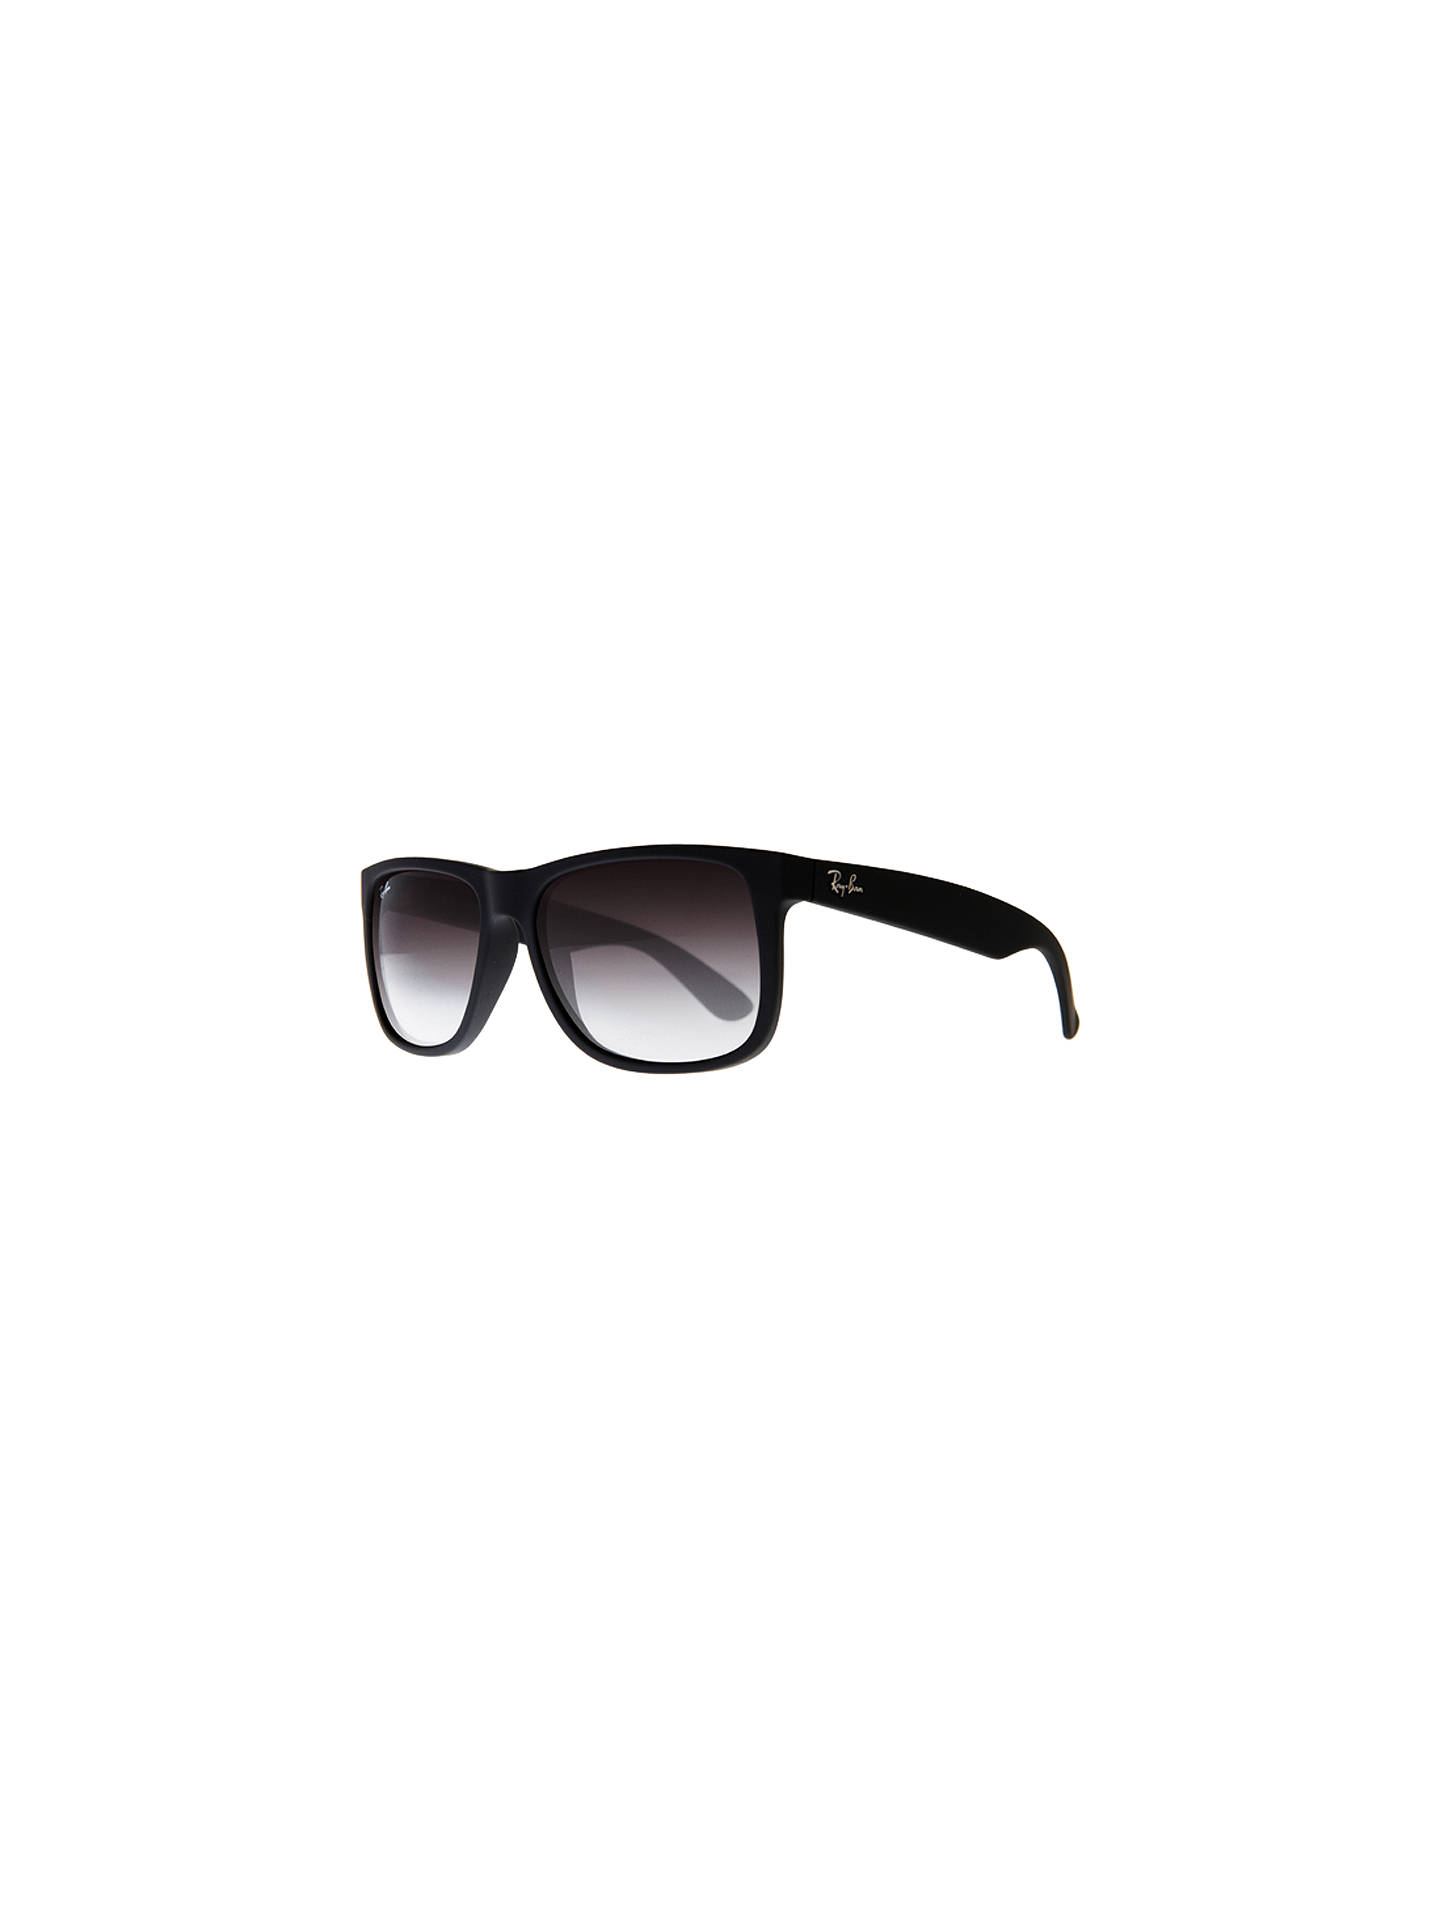 935c5b99fa2d36 Ray-Ban RB4165 Justin Rectangular Sunglasses at John Lewis   Partners